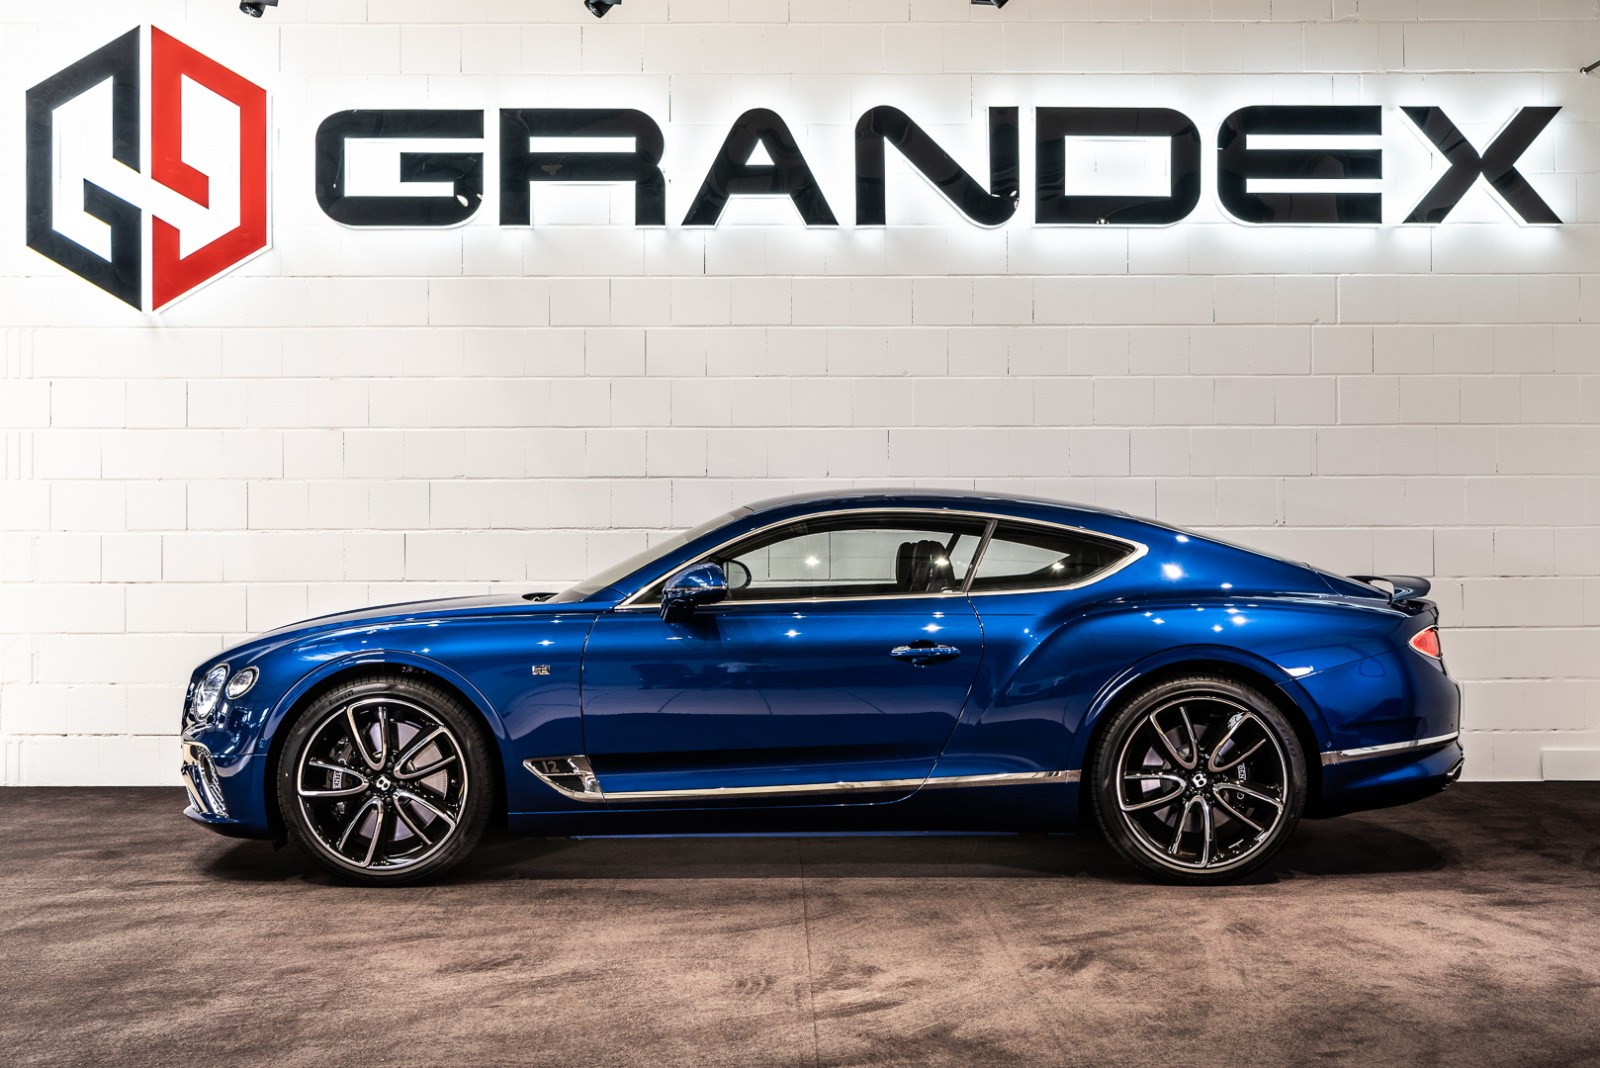 Bentley Continental Gt First Edition Luxury Pulse Cars Germany For Sale On Luxurypulse